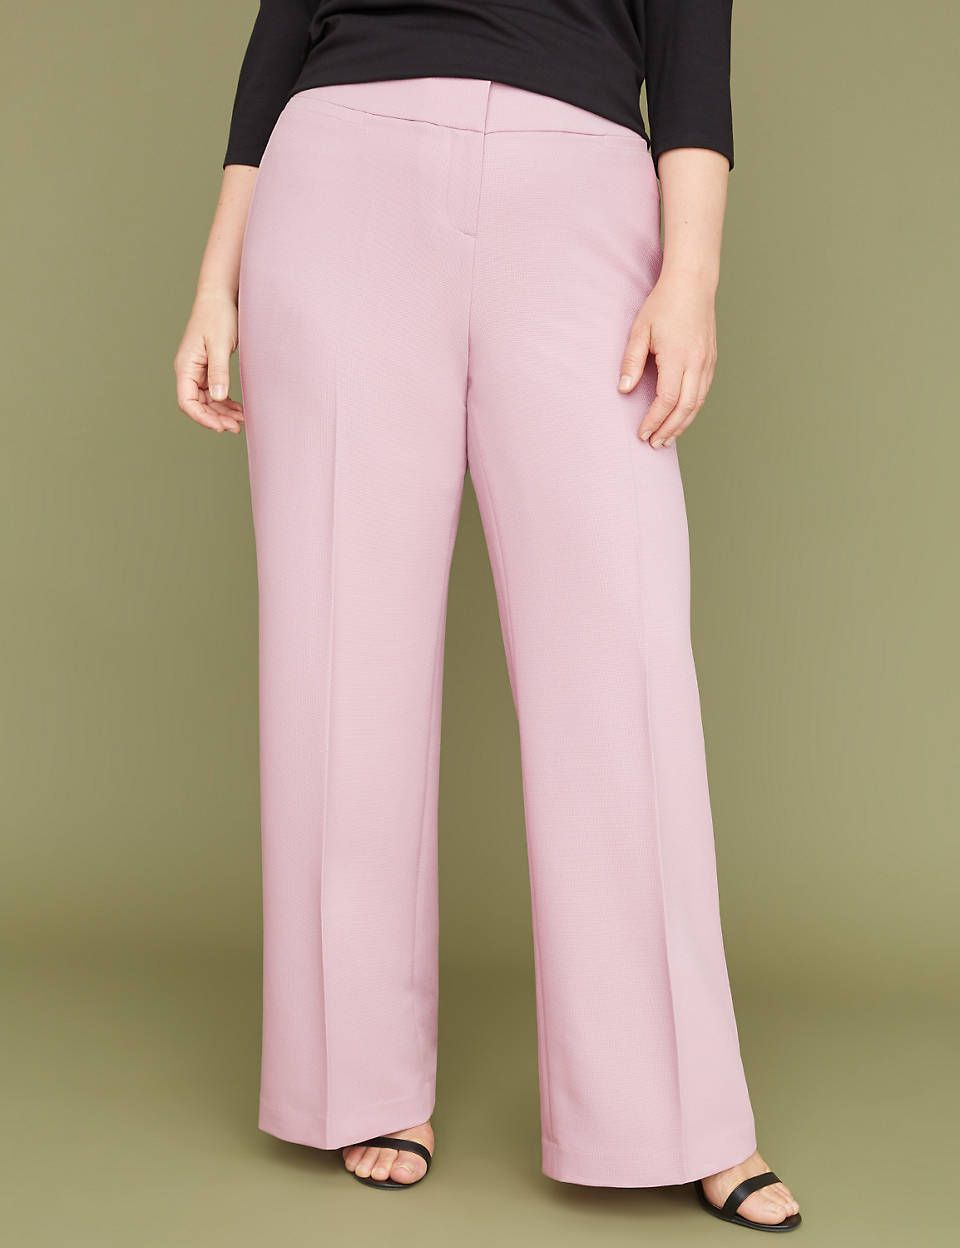 70748088daf00 Allie Tailored Stretch Wide Leg Pant - Textured